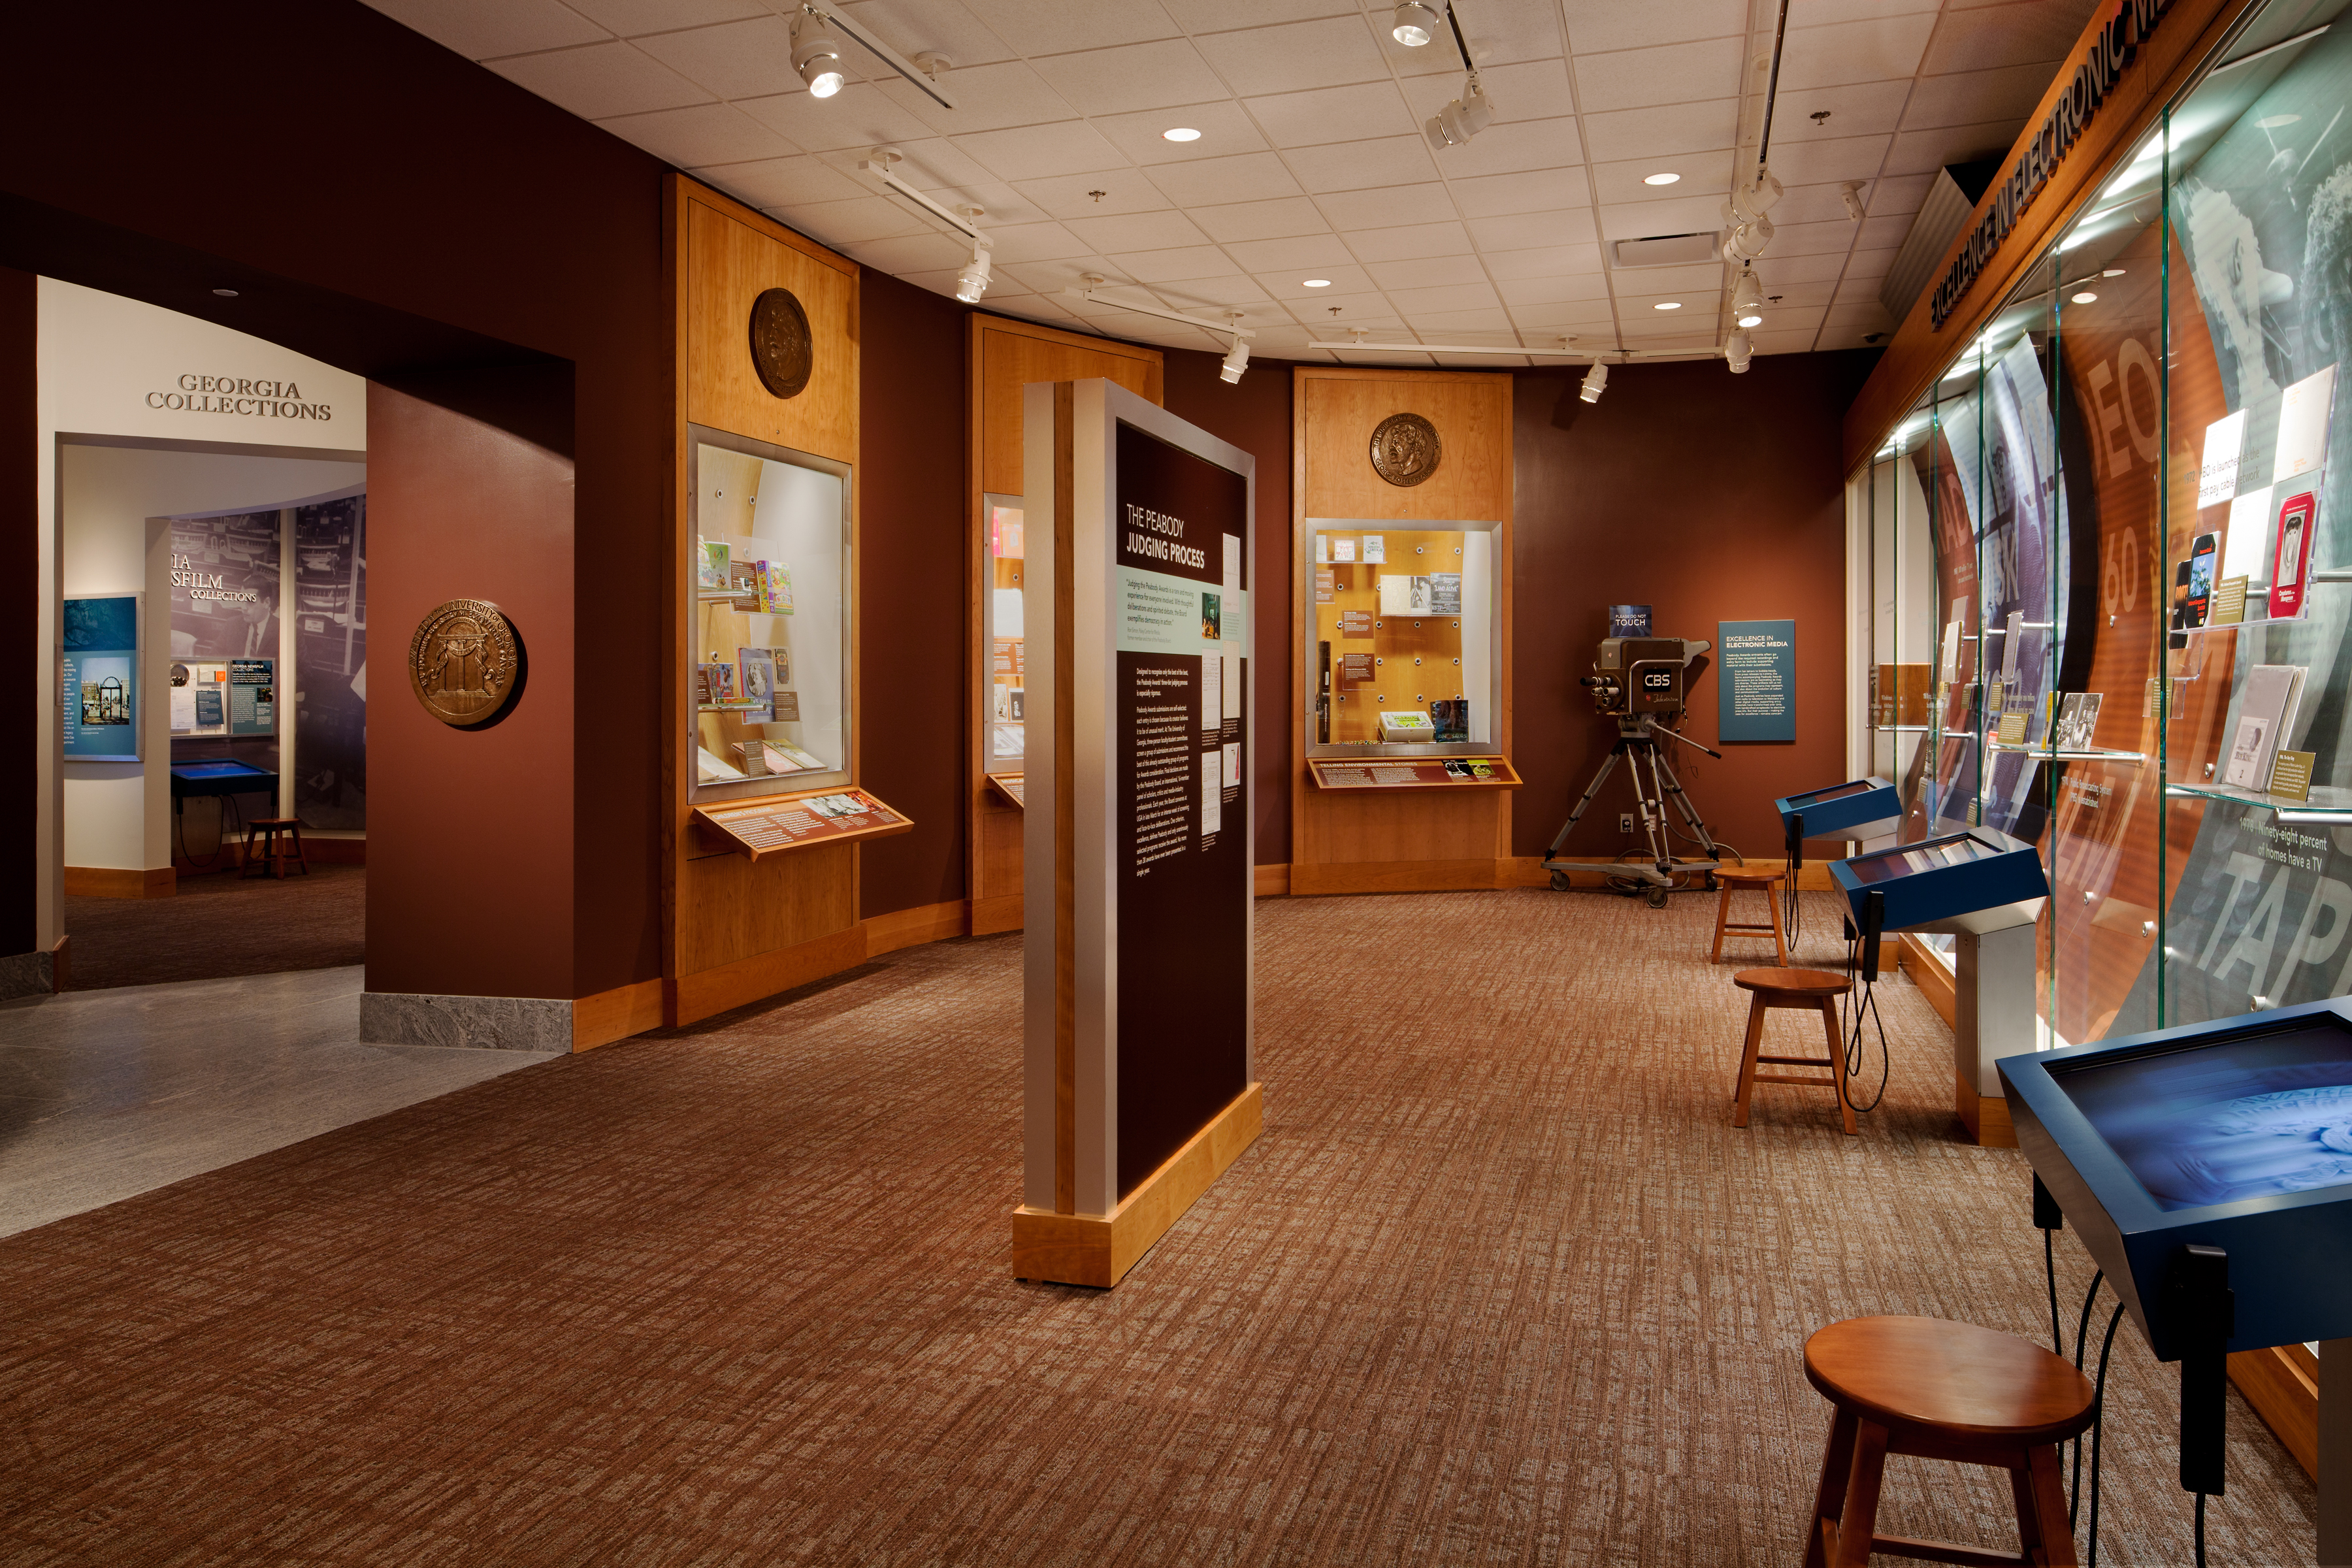 Peabody Awards Gallery at the Hargrett Rare Book and Manuscript Library, University of Georgia Libraries.